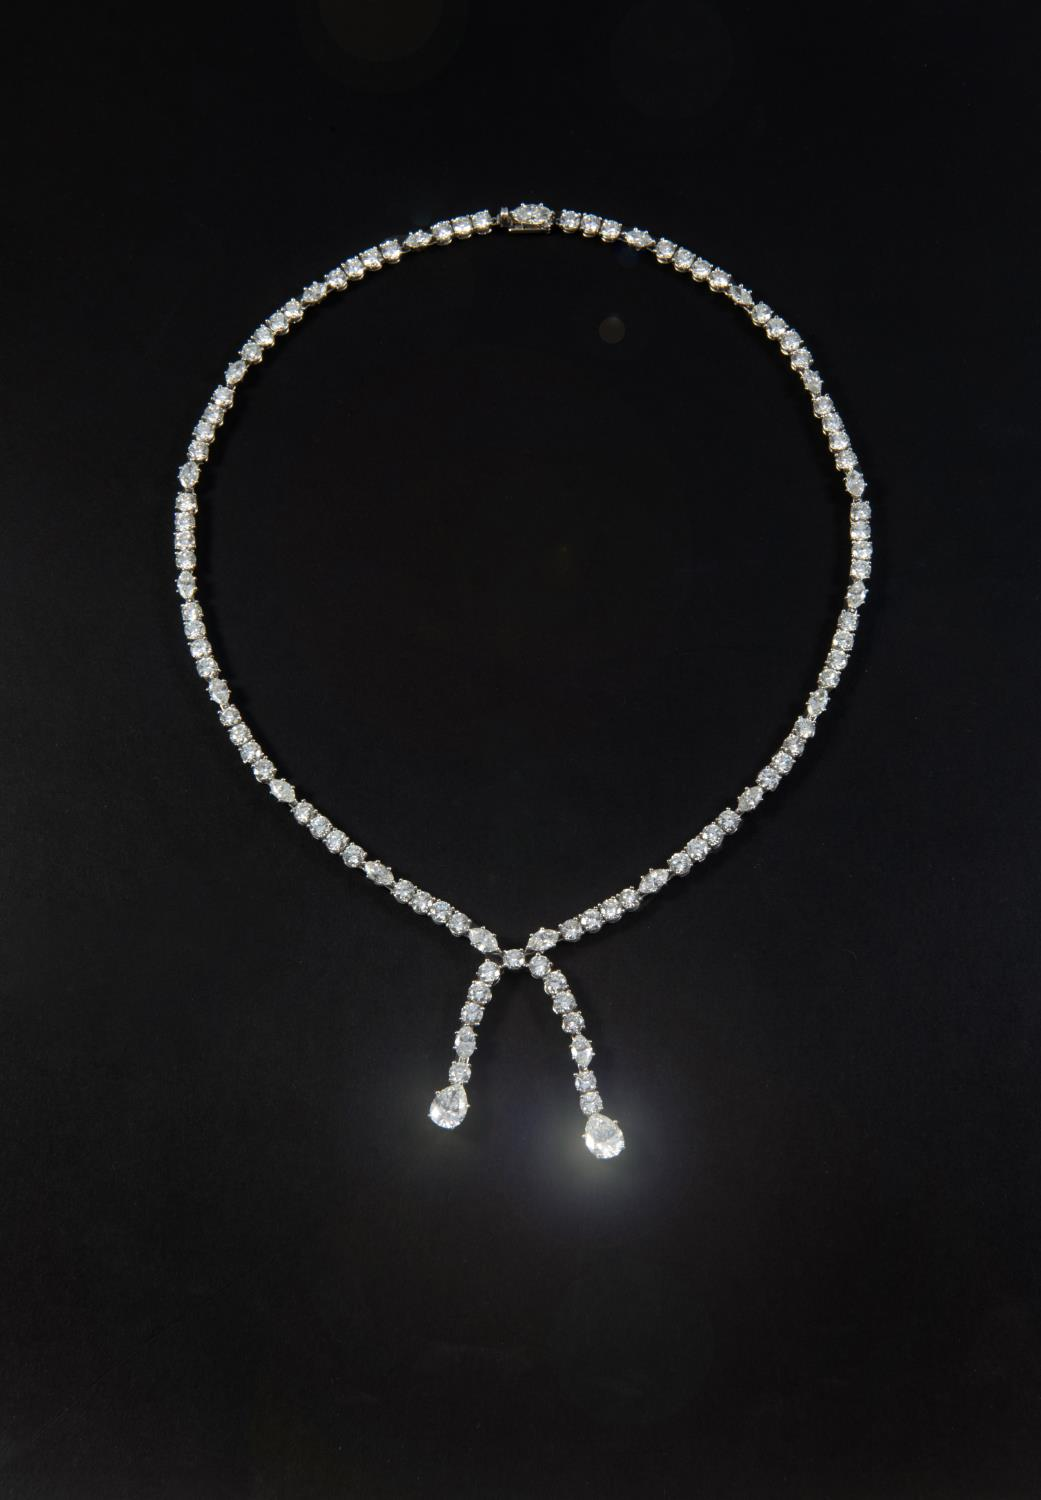 A DIAMOND DROP NECKLACE the necklace set with sections of four circular-cut diamonds, each divided